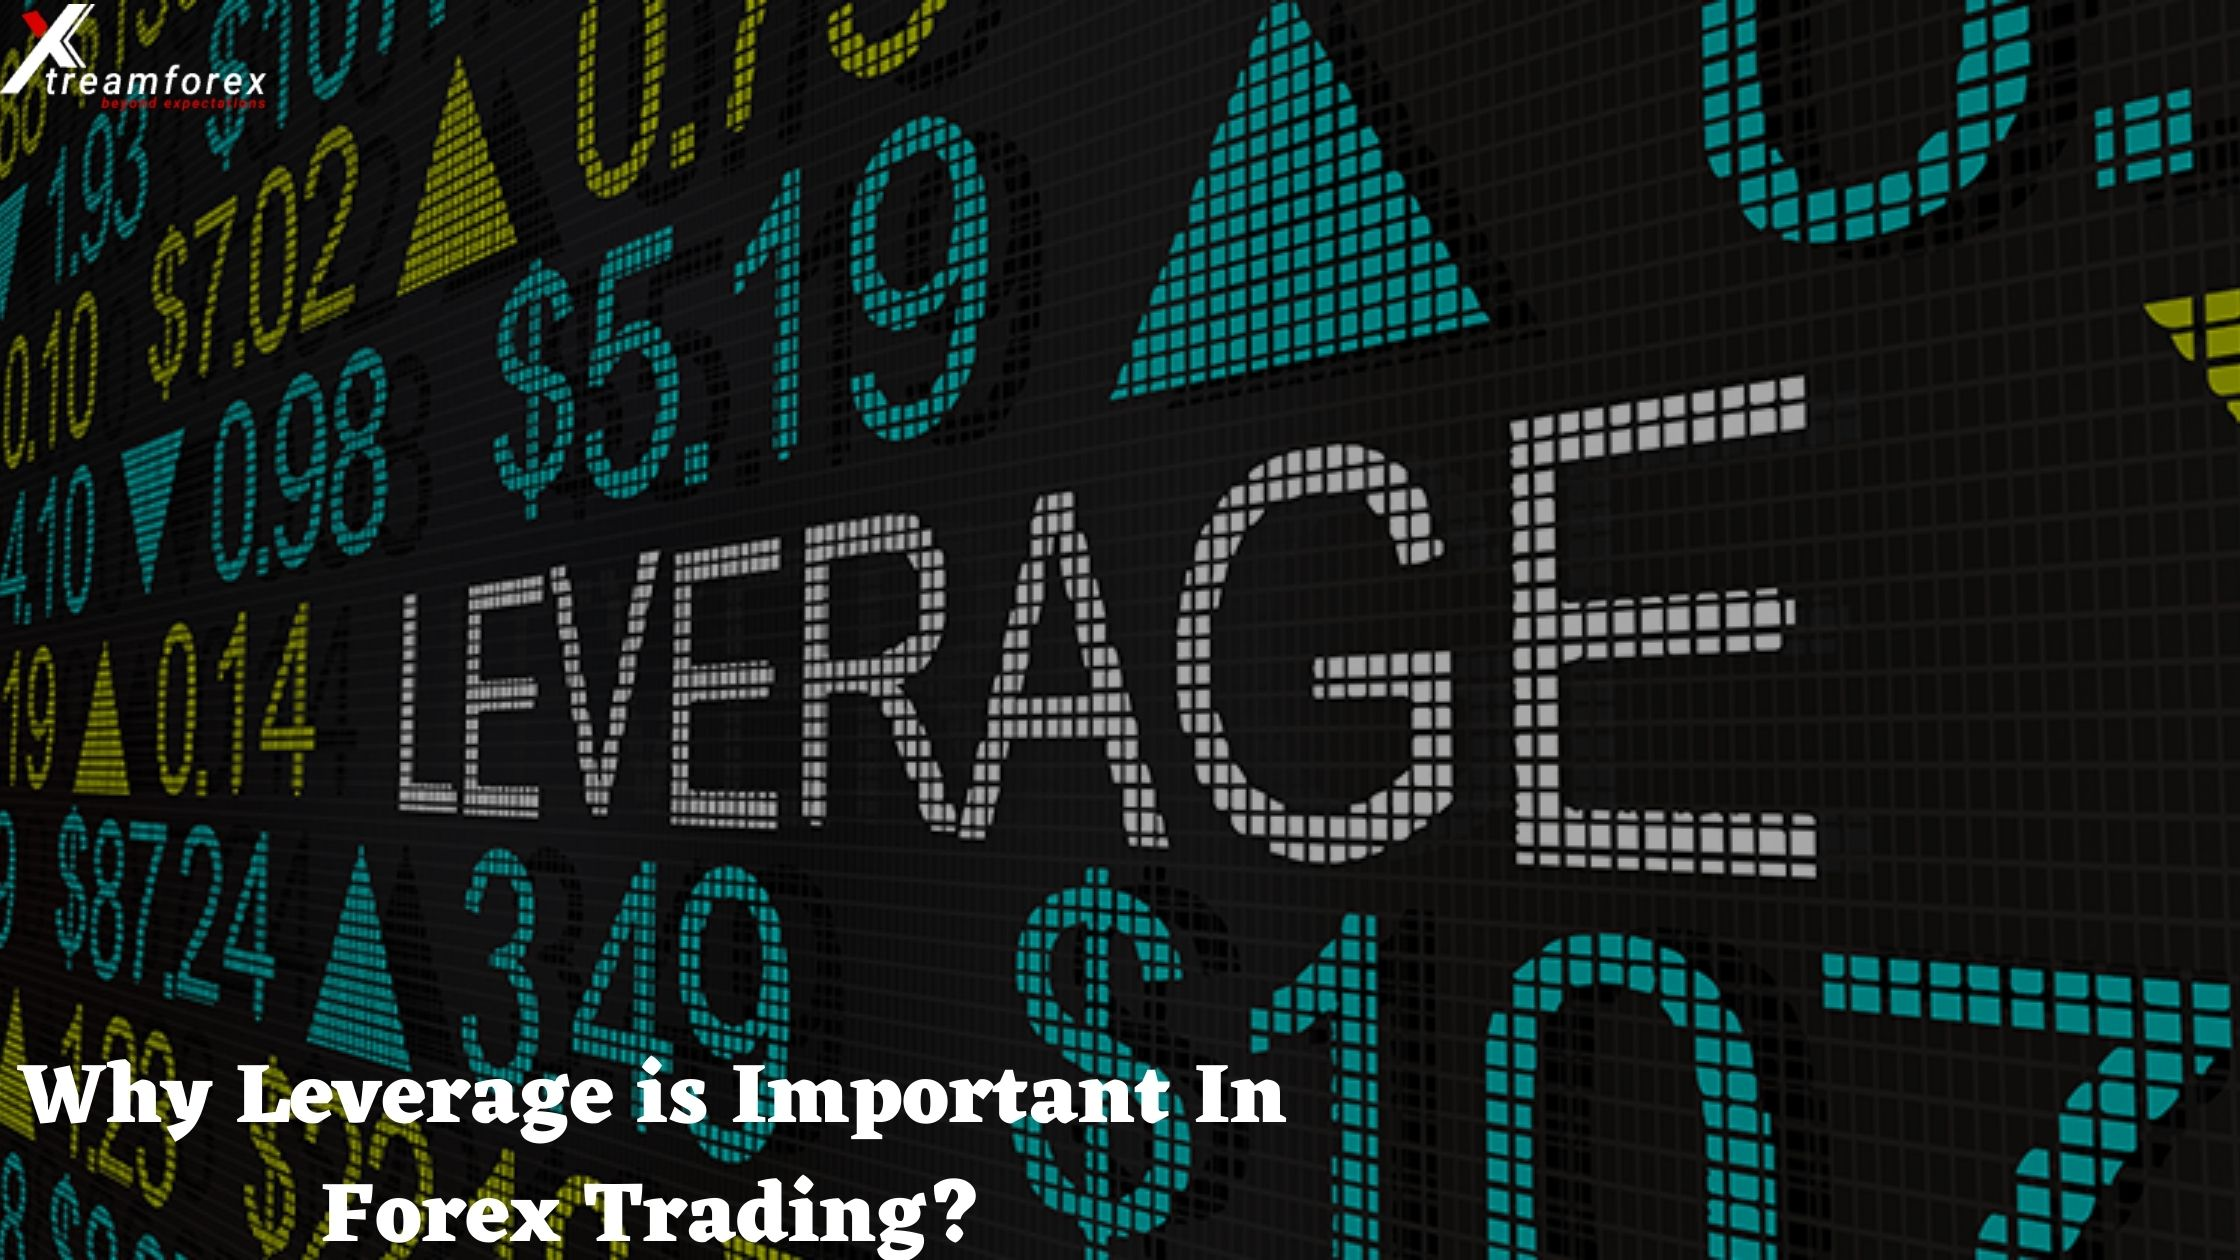 Why is Leverage Important in Forex Trading?